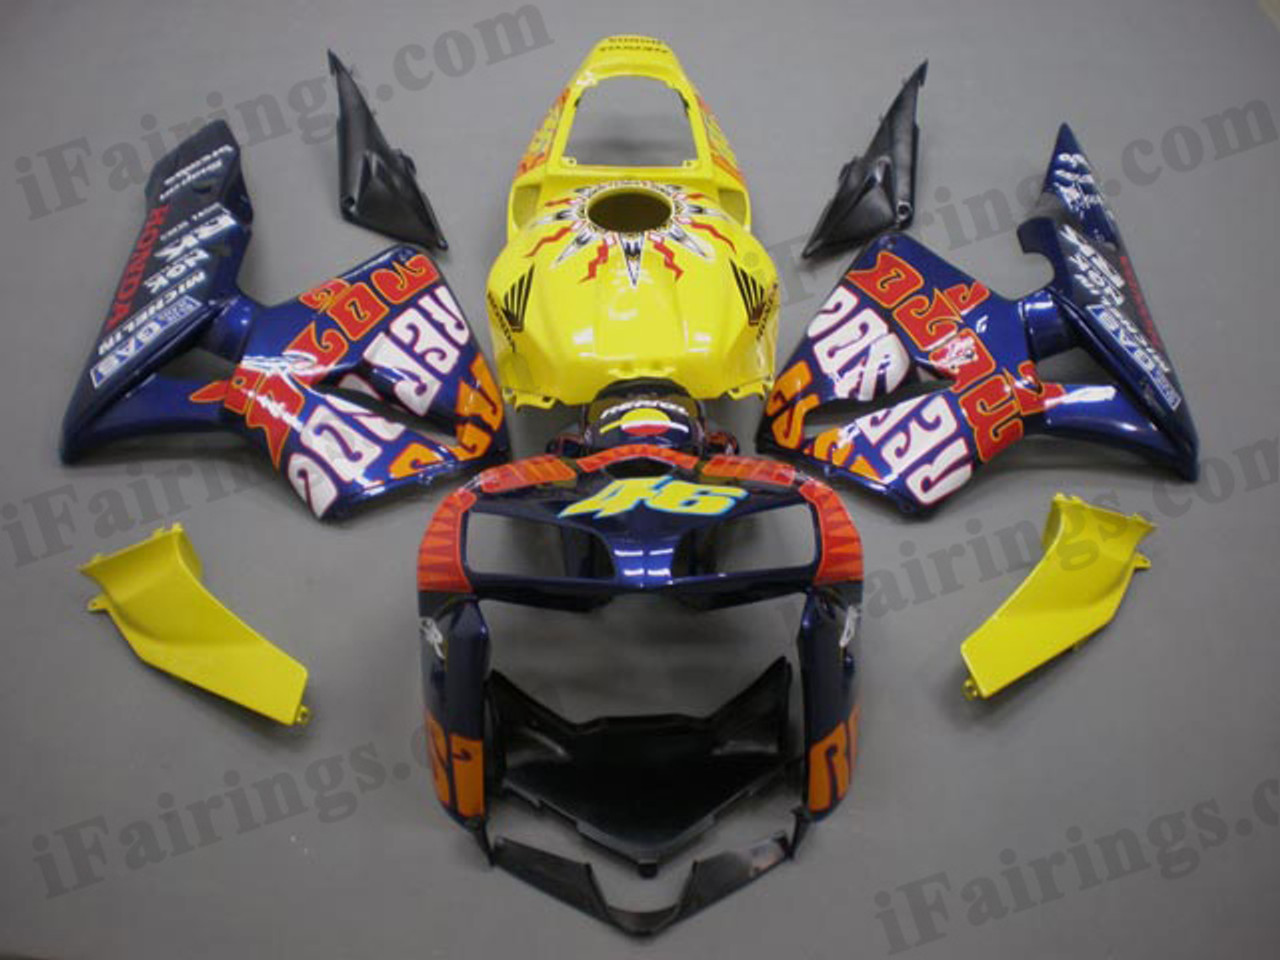 Aftermarket Fairing Kit For 2005 2006 Cbr600rr Rossi Repsol Motogp Edition